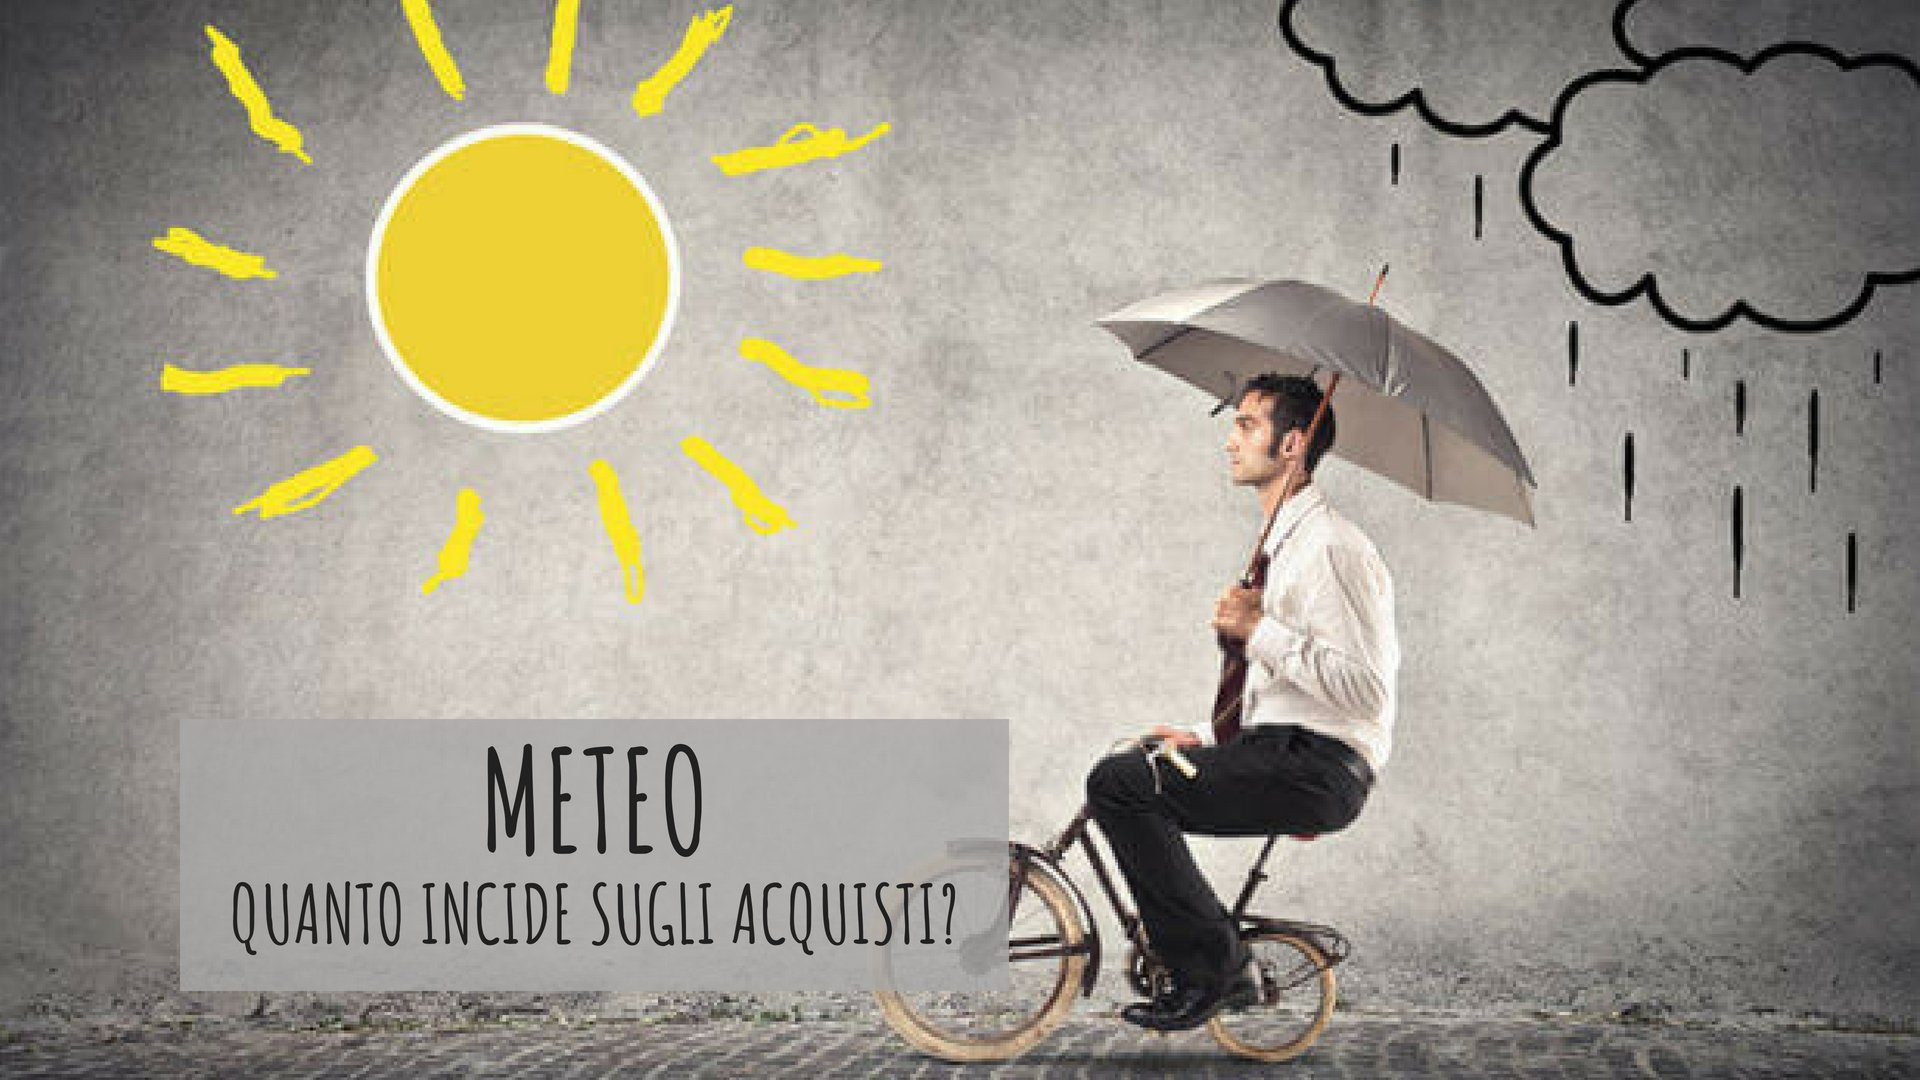 Meteo e acquisti: come rendere l'accoppiata vincente nelle campagne di marketing